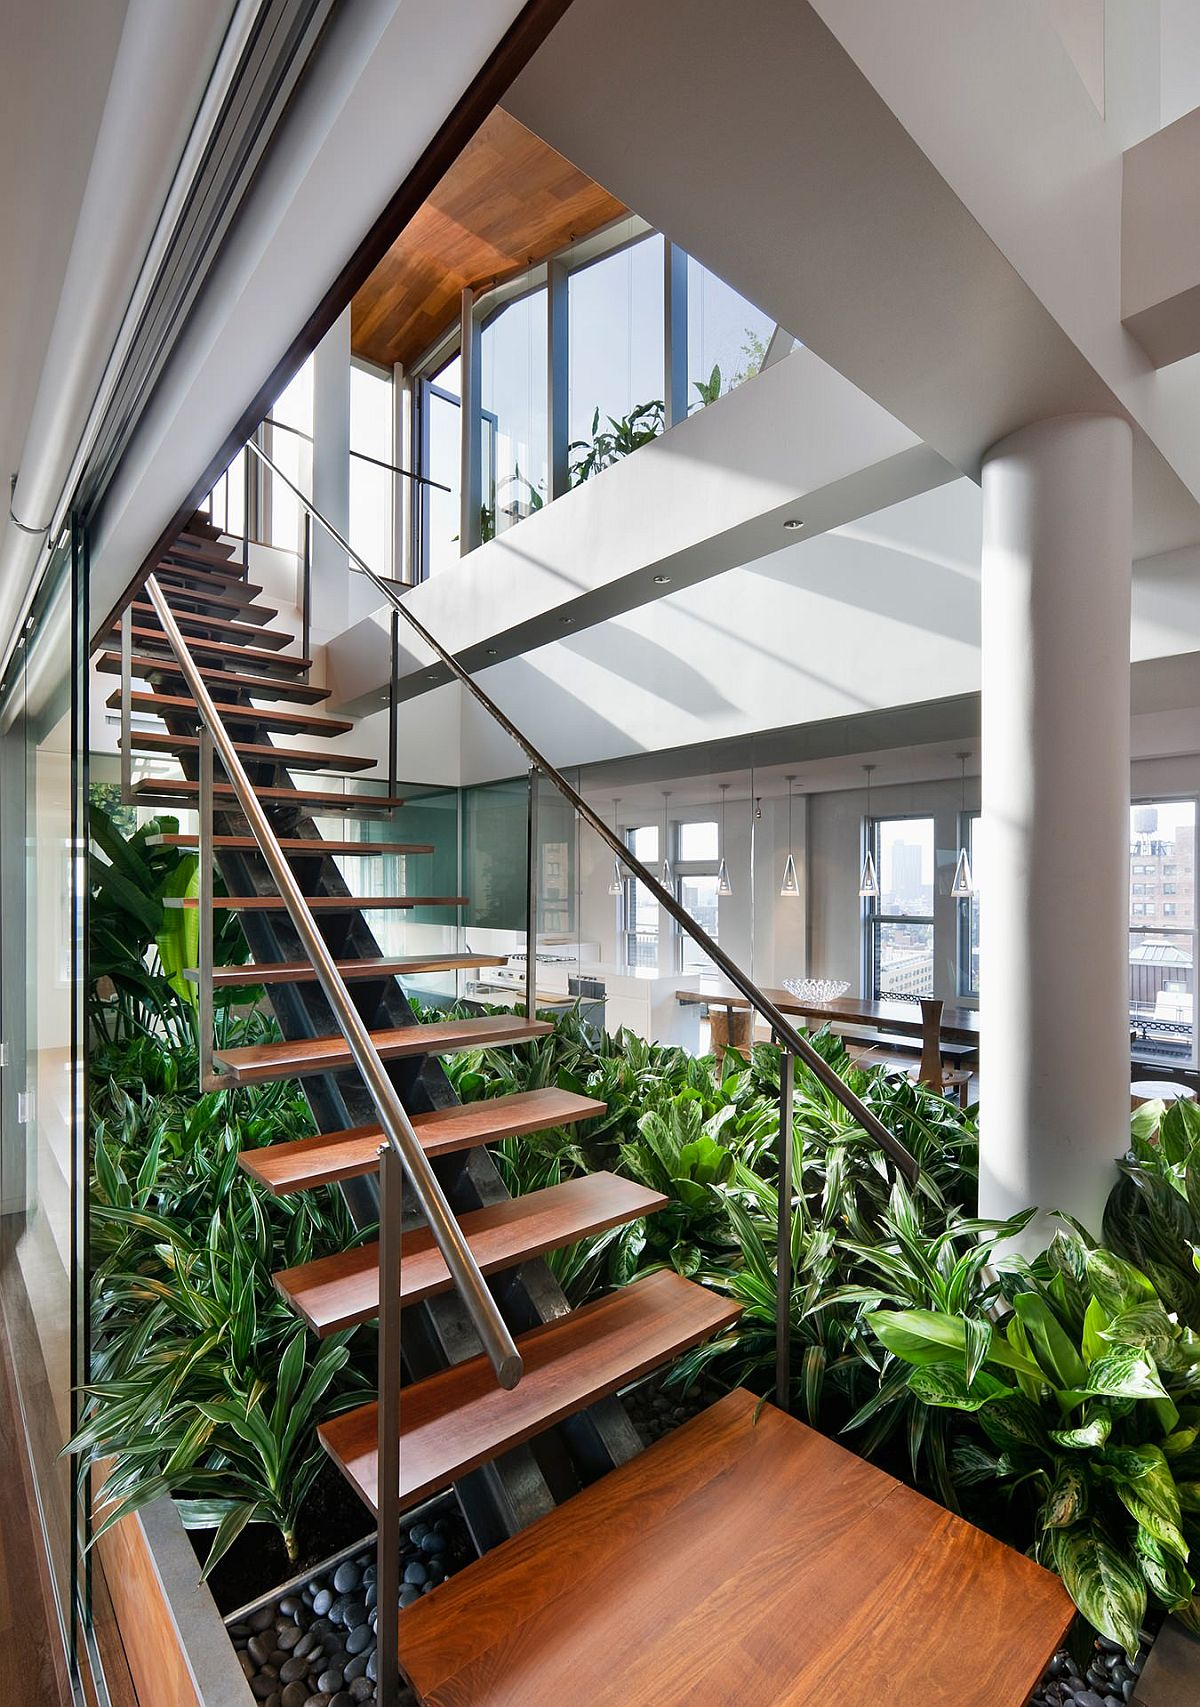 Plants-improve-the-quality-of-air-inside-this-home-immensely-73869